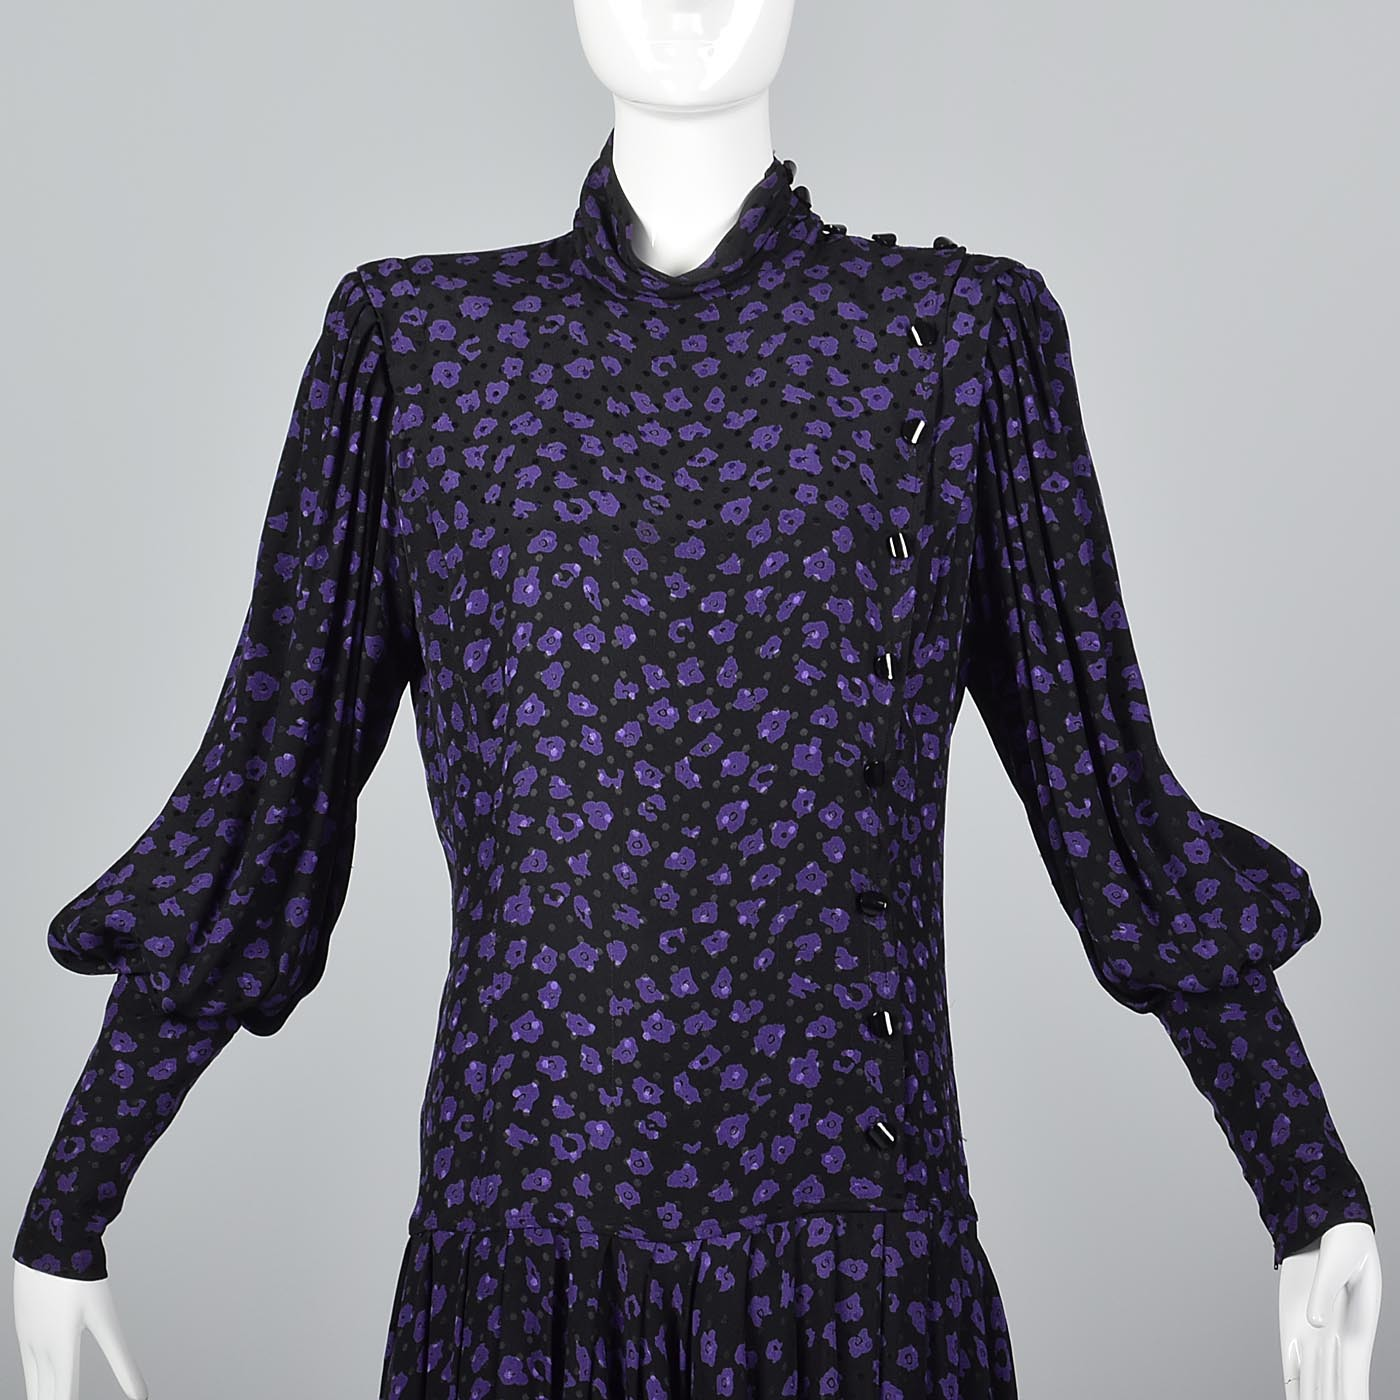 1980s Emmanuel Ungaro  Solo Donna Drop Waist Dress